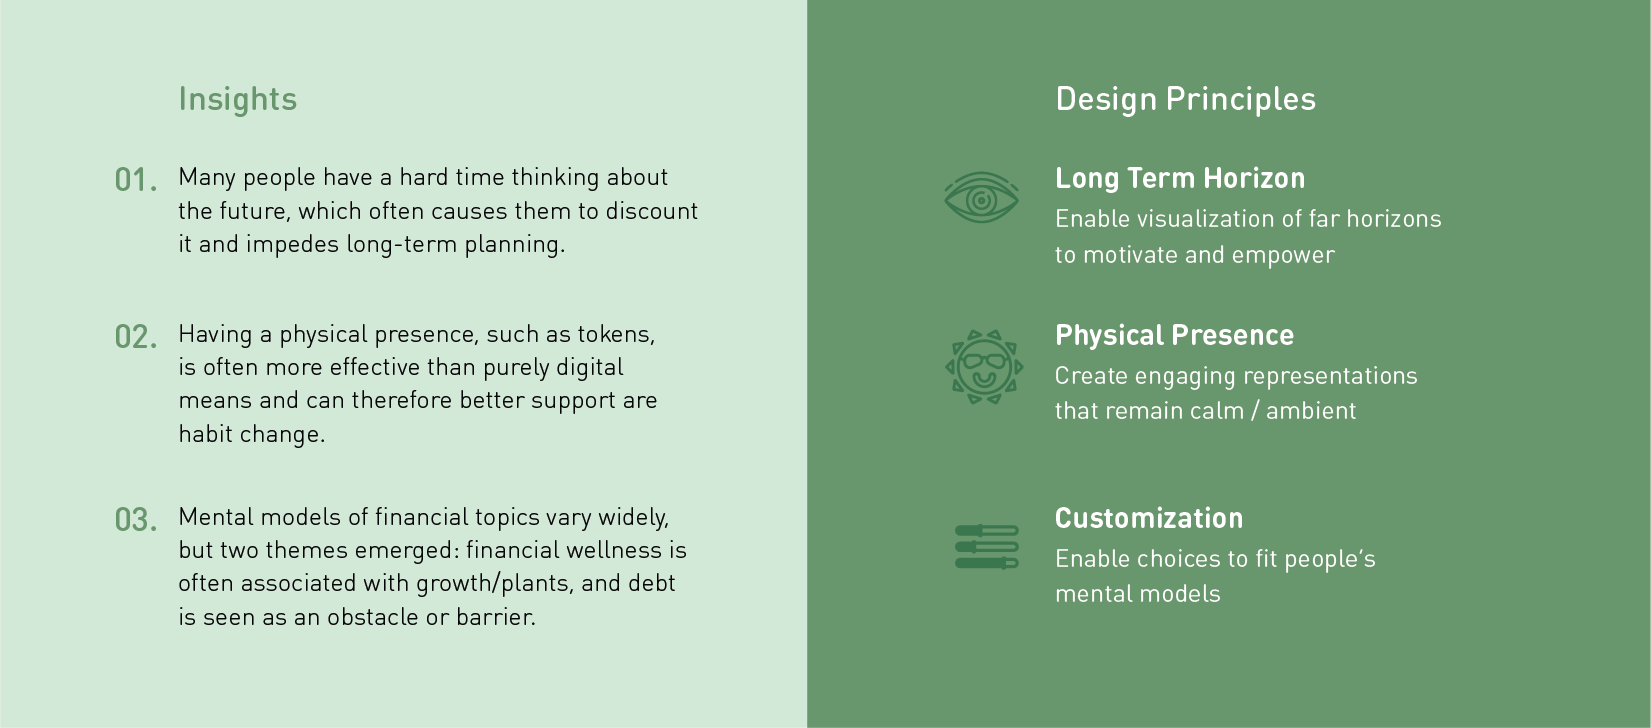 design-principles-01.png